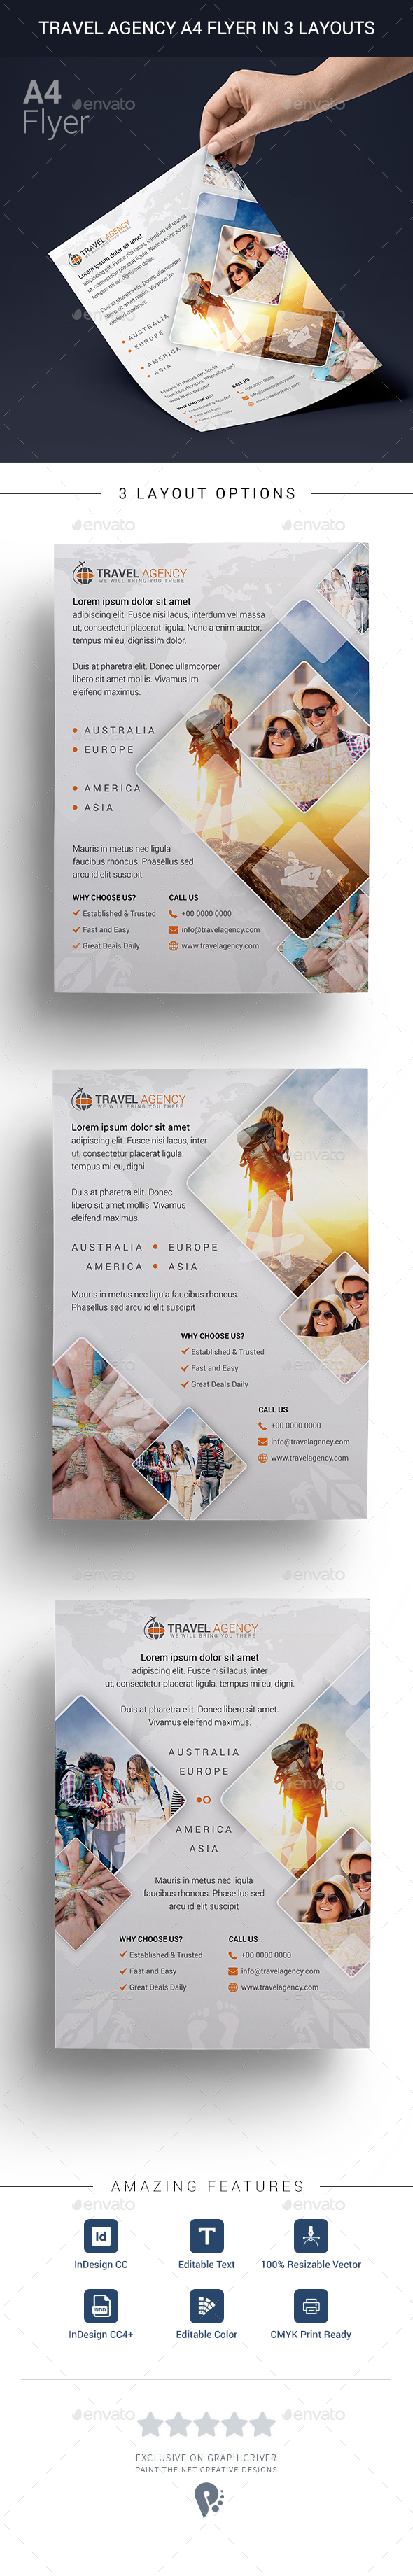 Travel Agency A4 Flyer in 3 Layouts - Flyers Print Templates